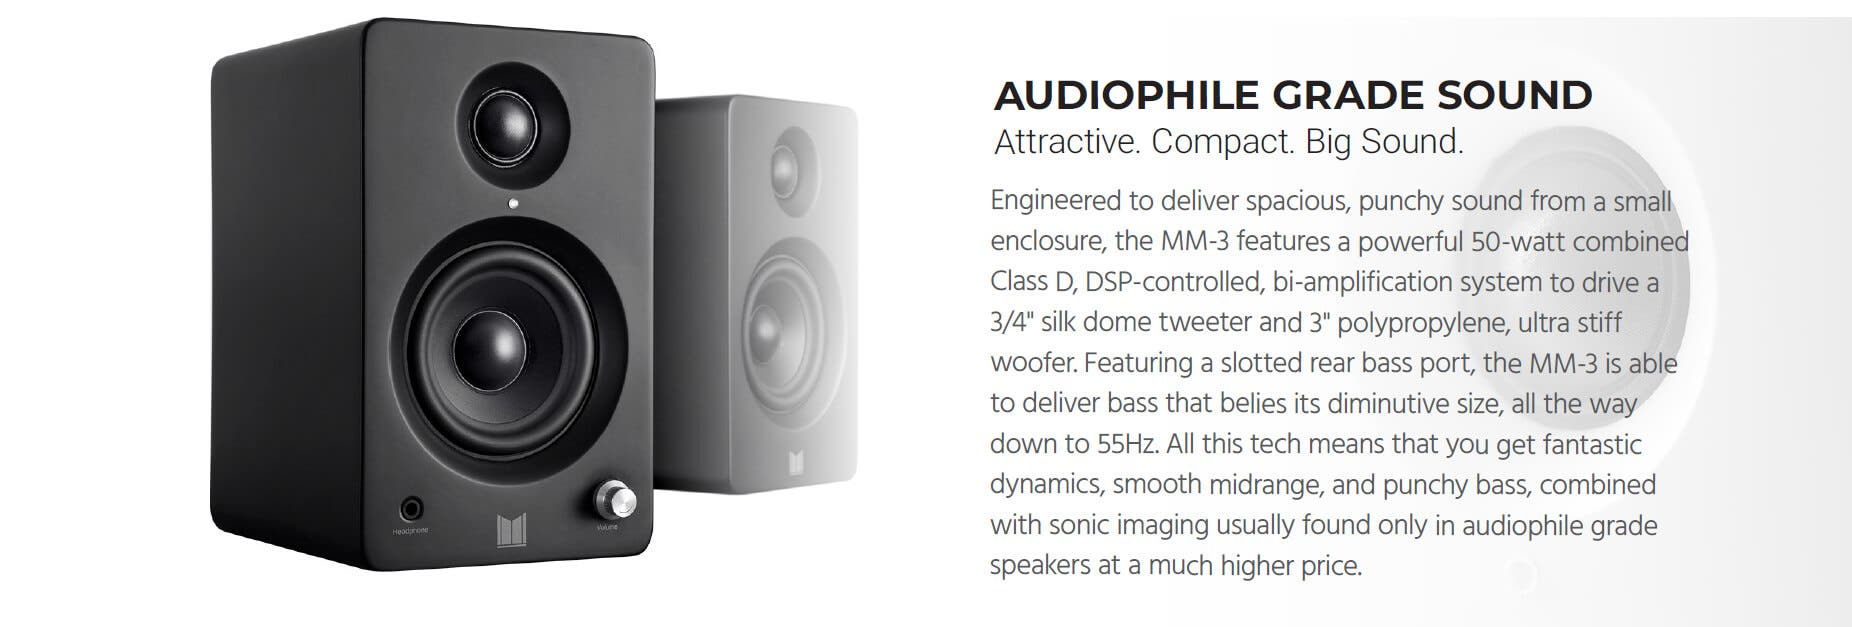 Monolith by Monoprice MM-3 Audiophile Grade Desktop Speakers.jpg